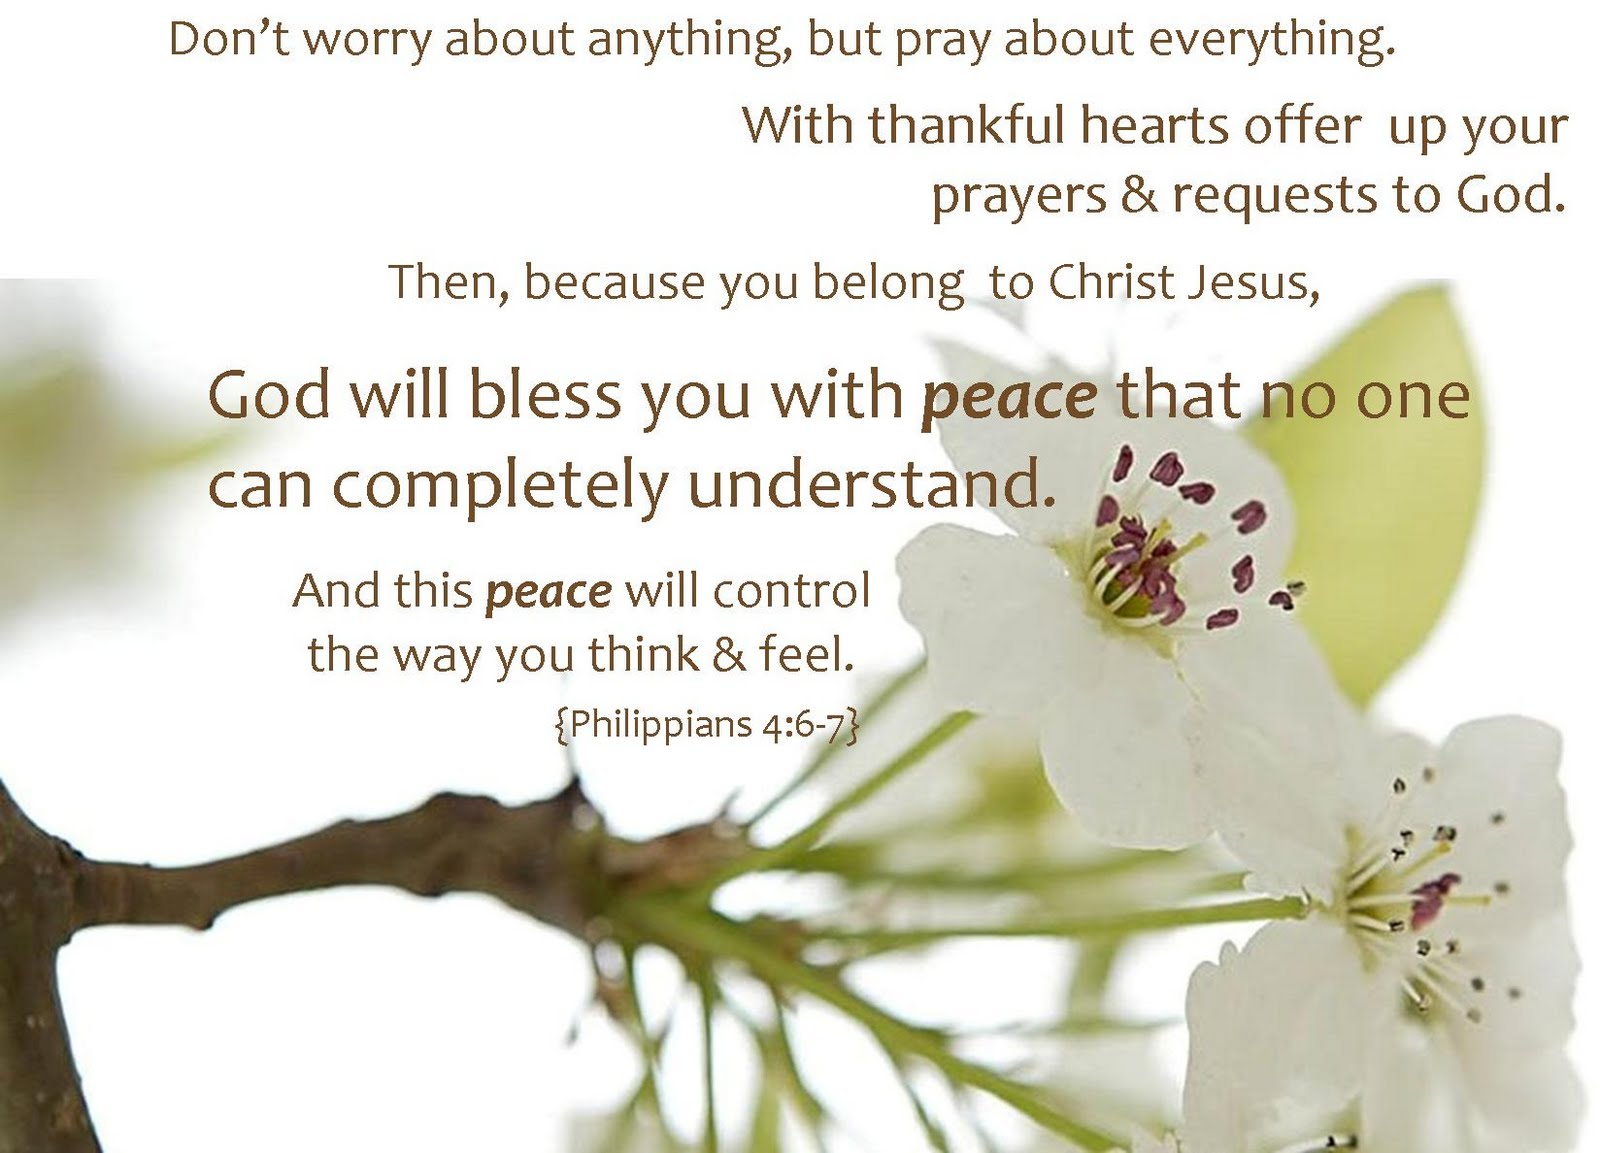 God will bless you with peace